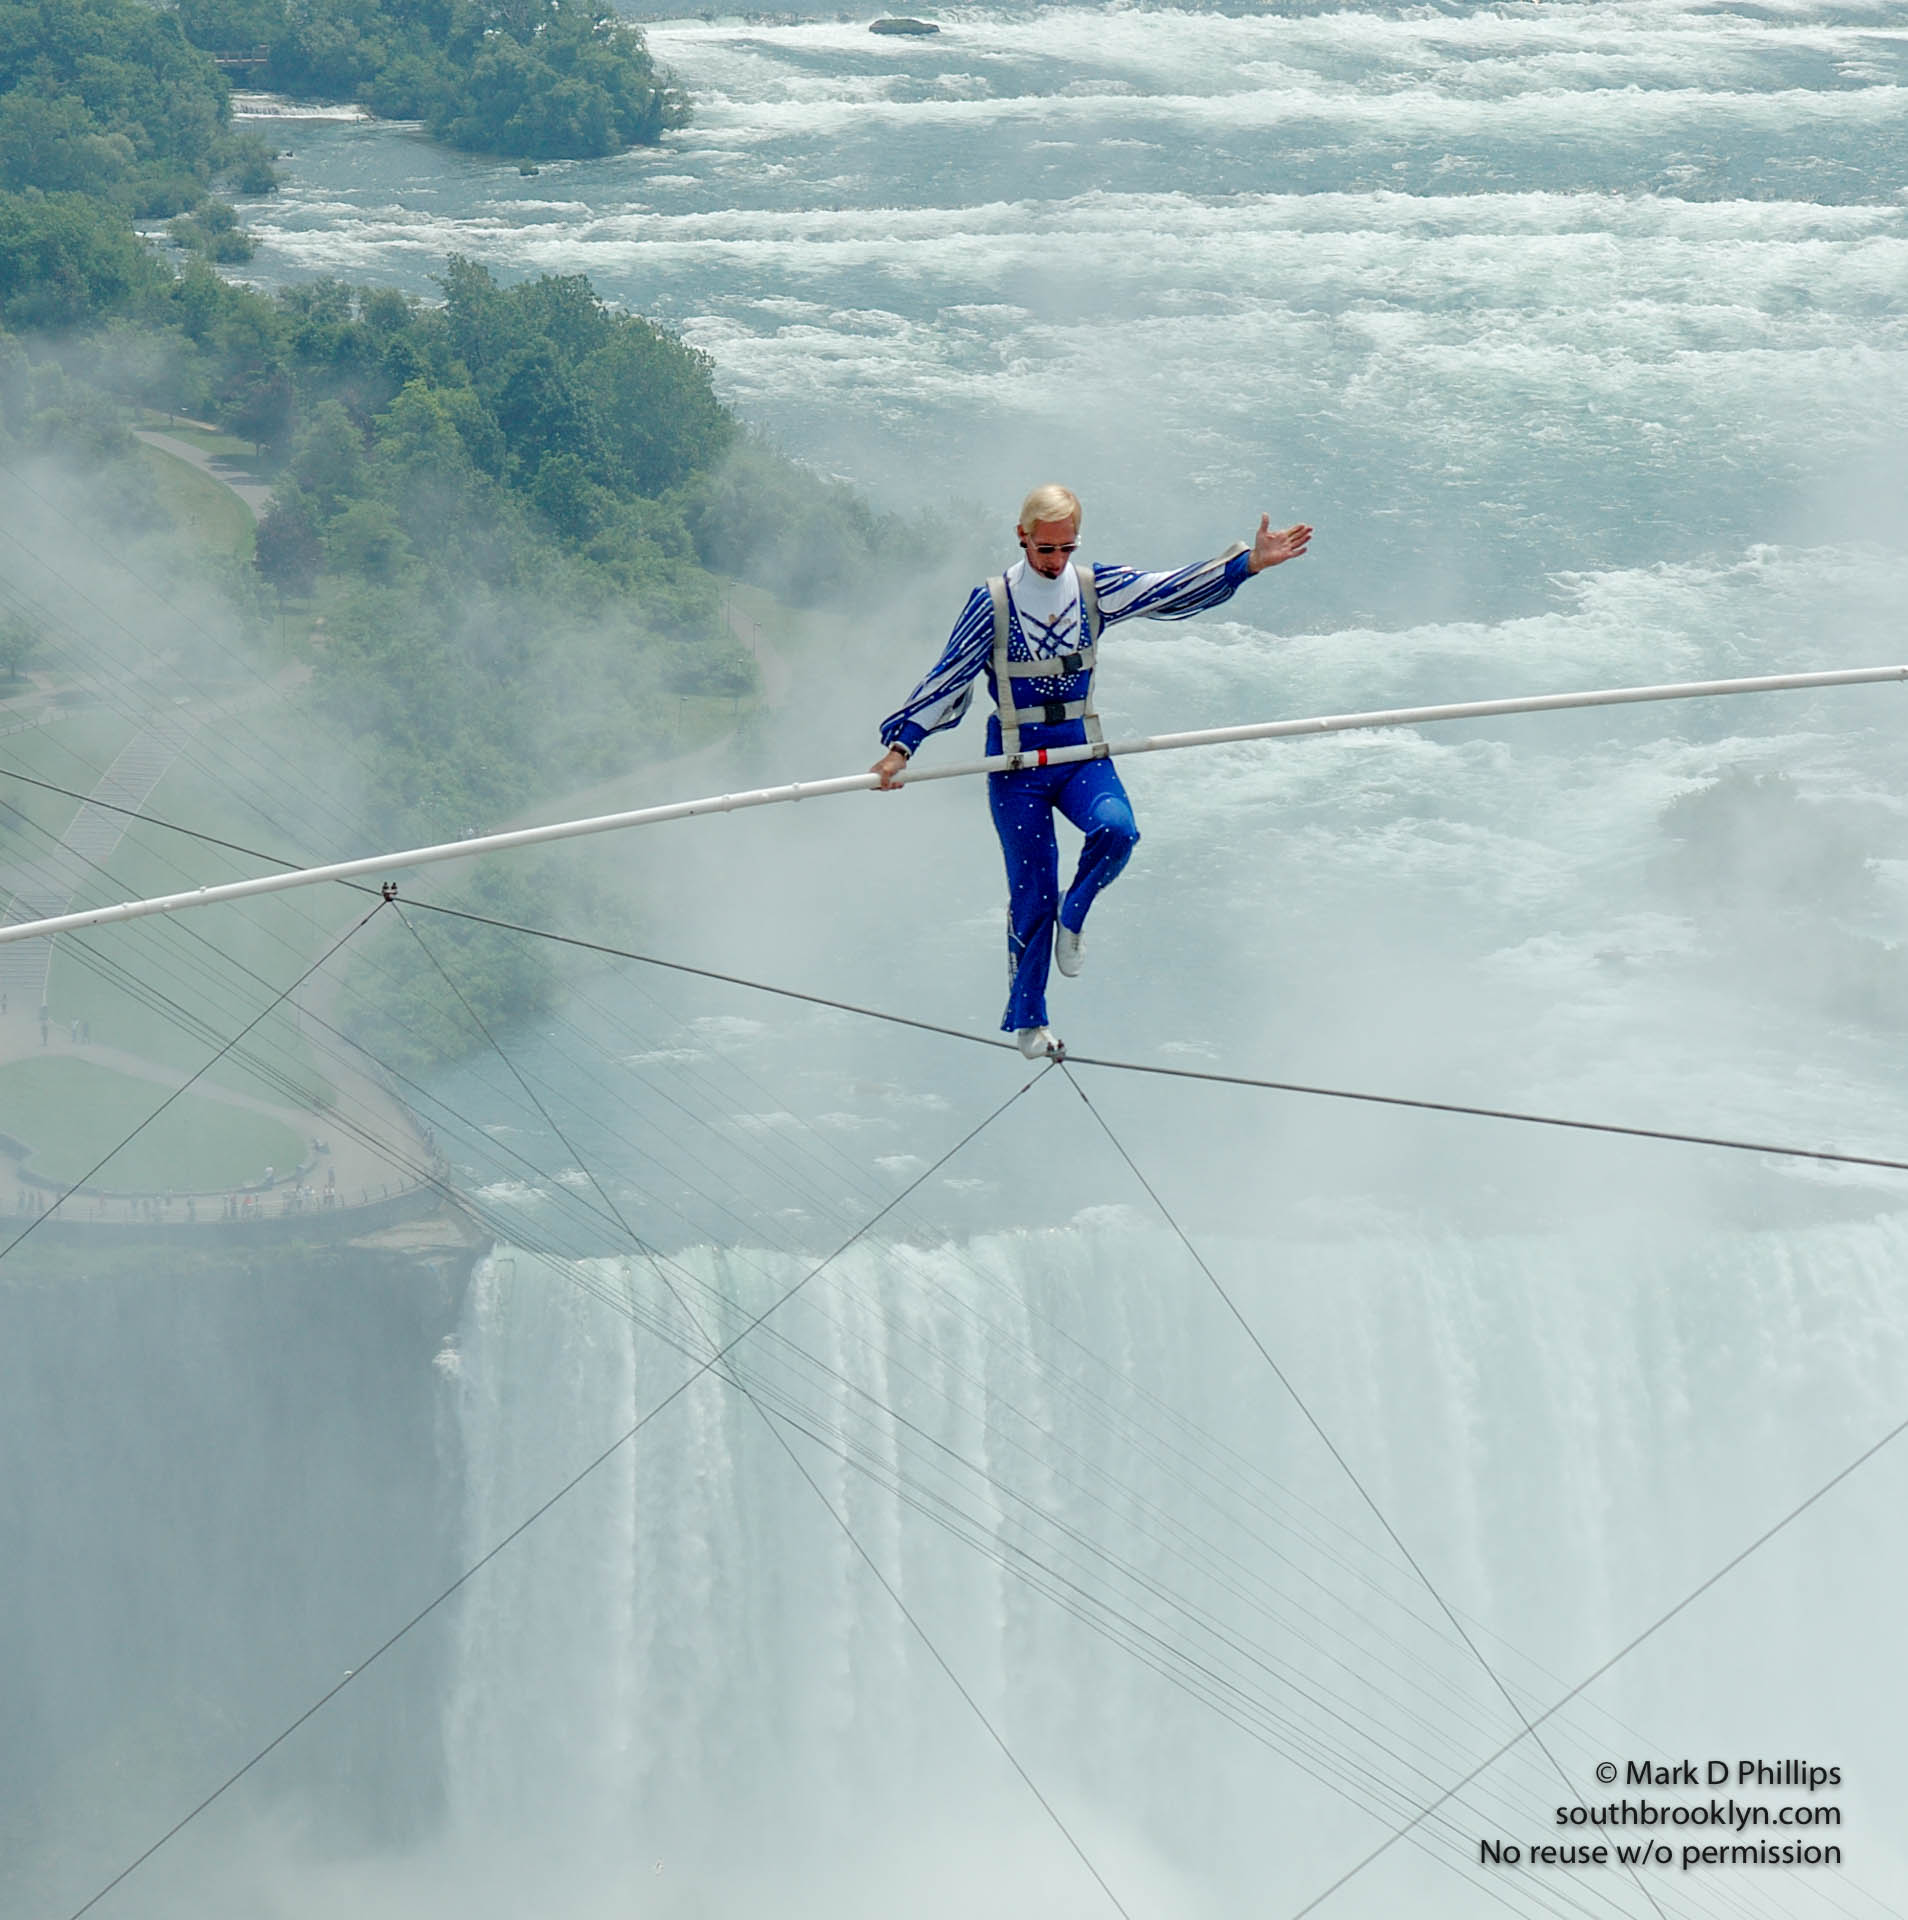 Jay Cochrane skywalks above Niagara Falls, Canada between the Niagara Fallsview Casino Resort and the Hilton Hotel on 14 June, a distance of 650 feet and 400 feet above the ground. Cochrane performed the skywalks between the hotels daily beginning June 17, 2005. The daily walks were a prelude to the ìSkylon Tower